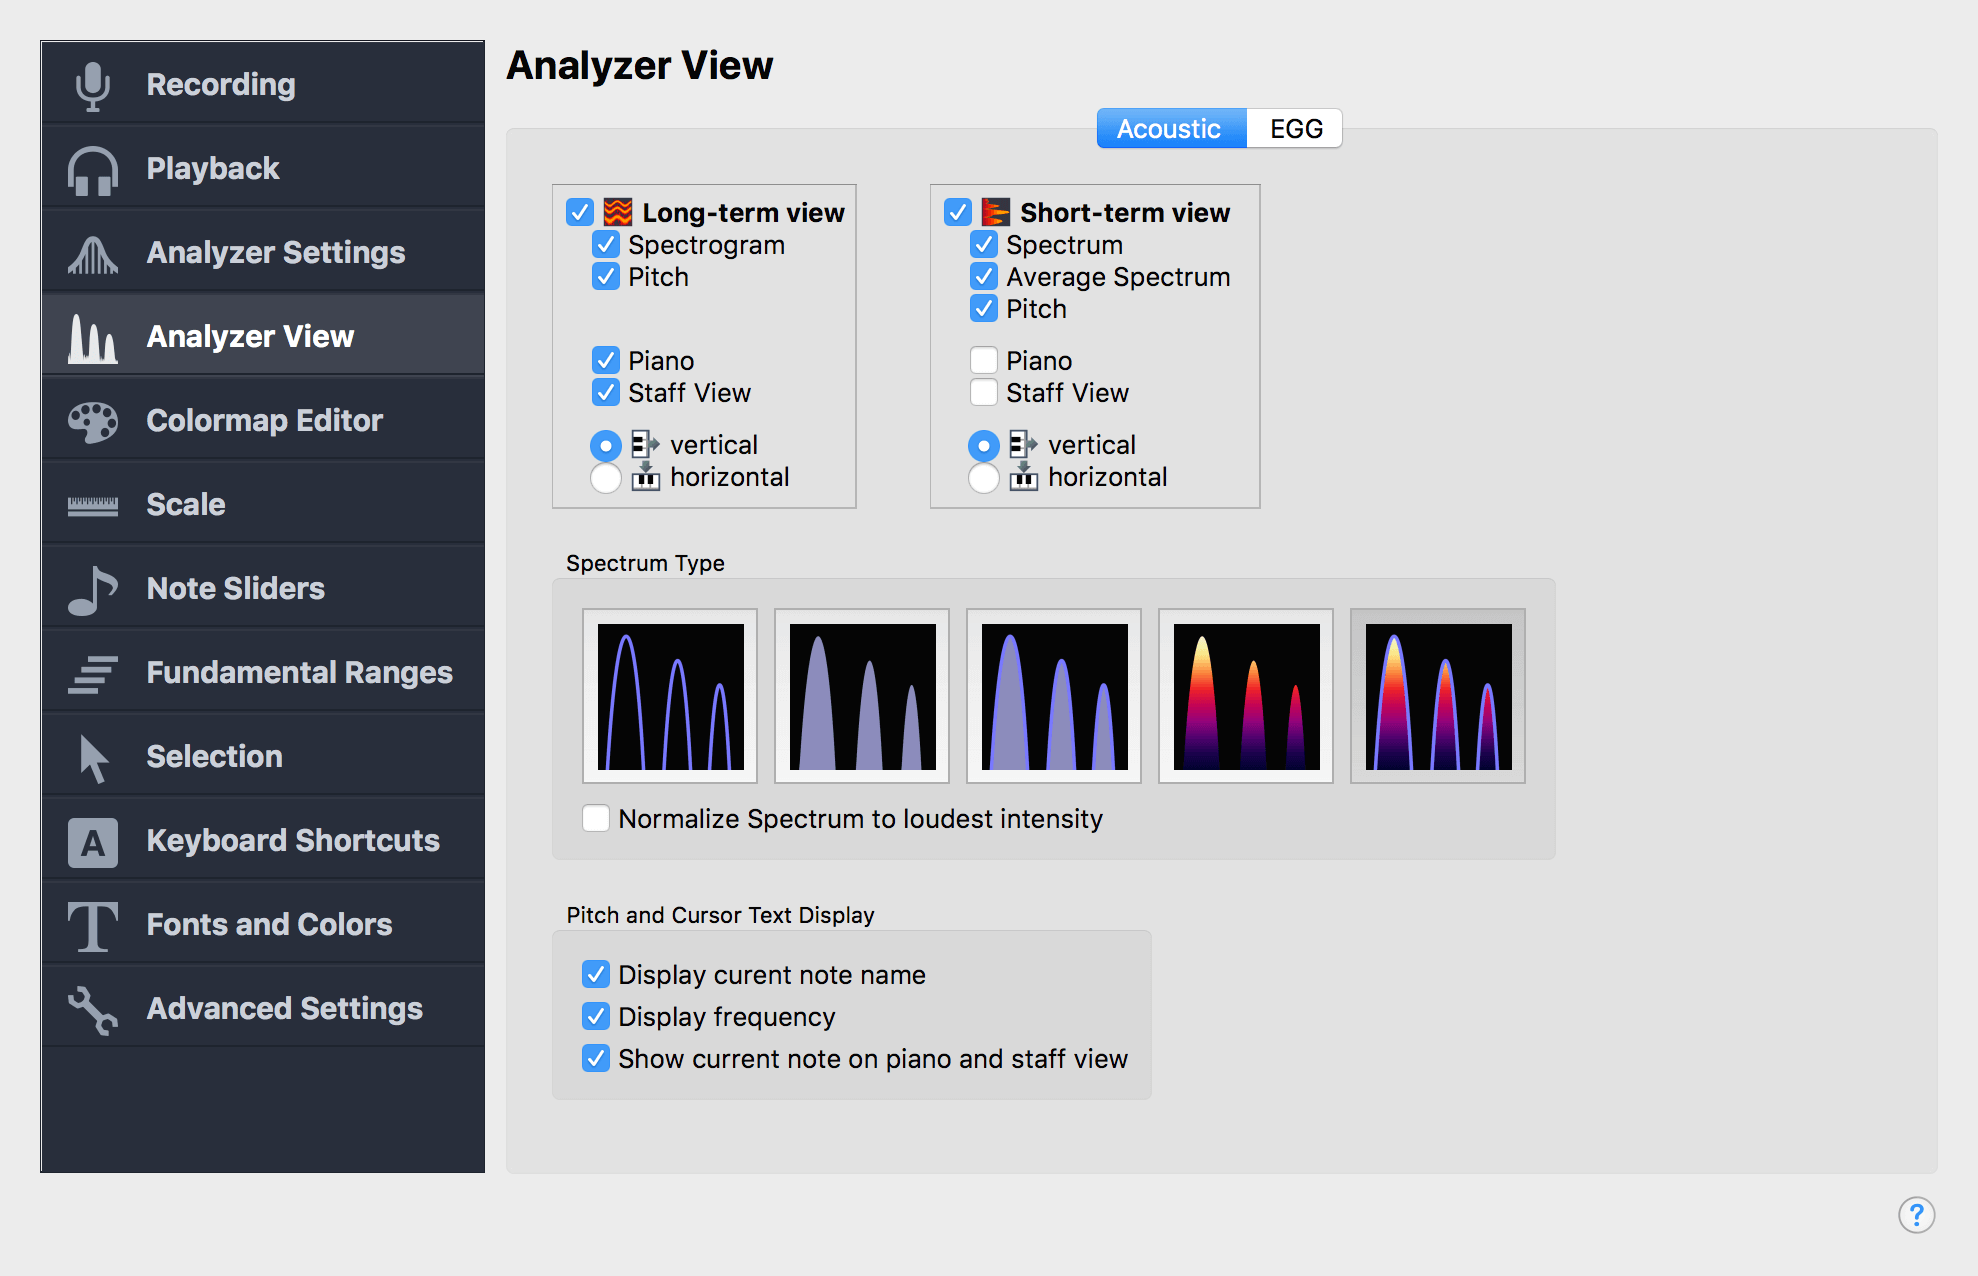 Analyzer View Settings